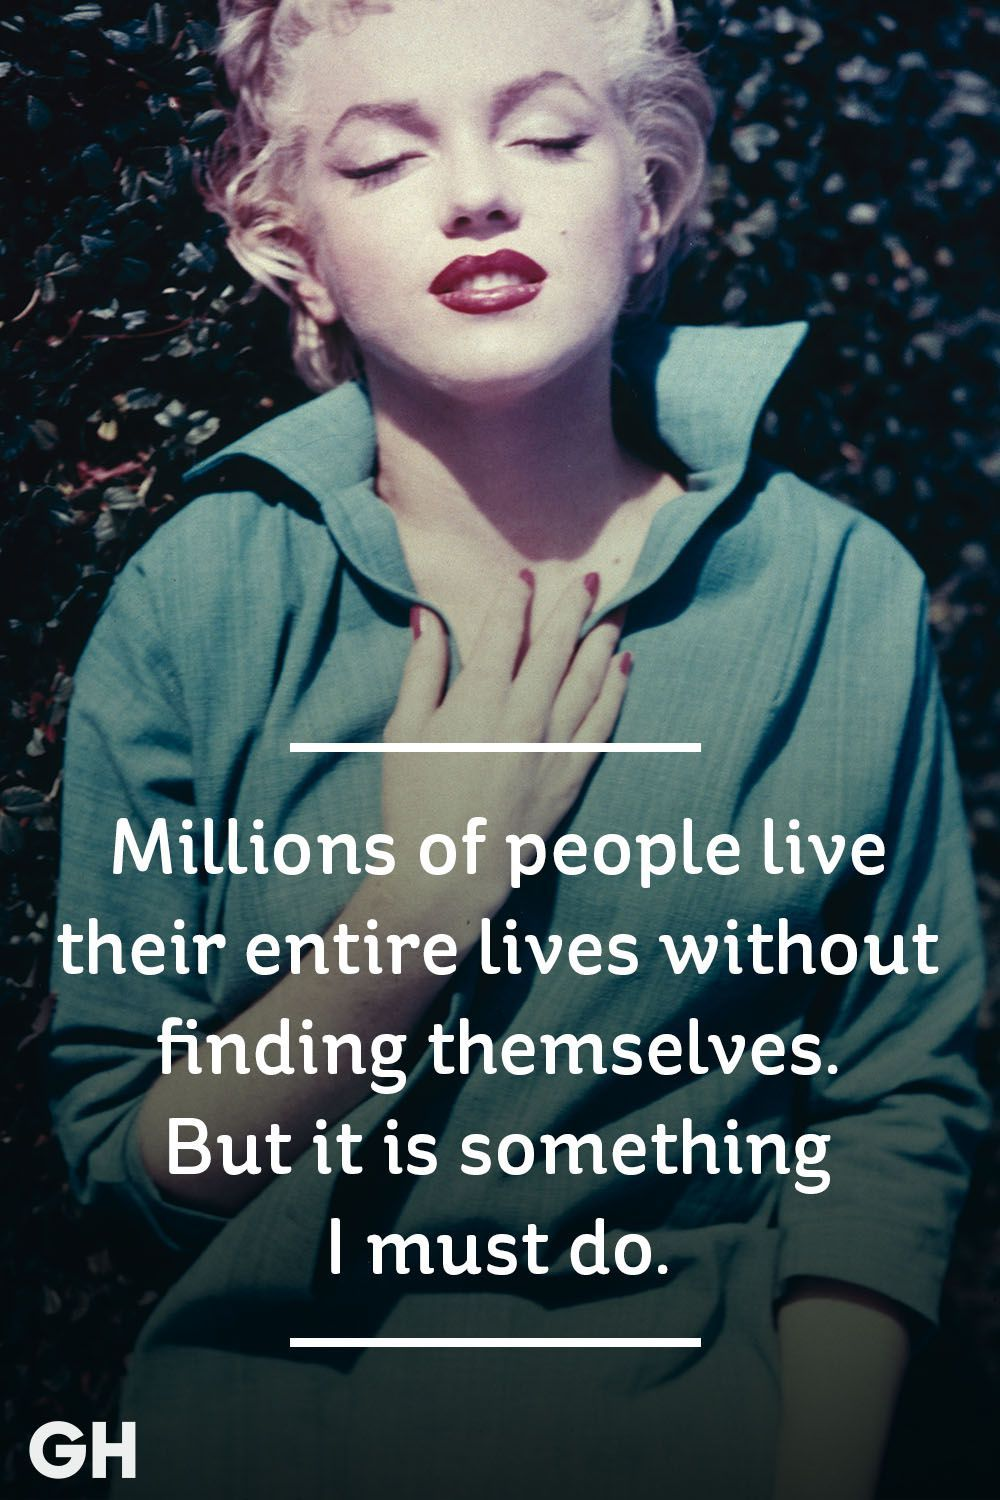 30 Inspiring Famous Marilyn Monroe Quotes & Sayings About ... |Marilyn Monroe Quotes And Sayings About Love